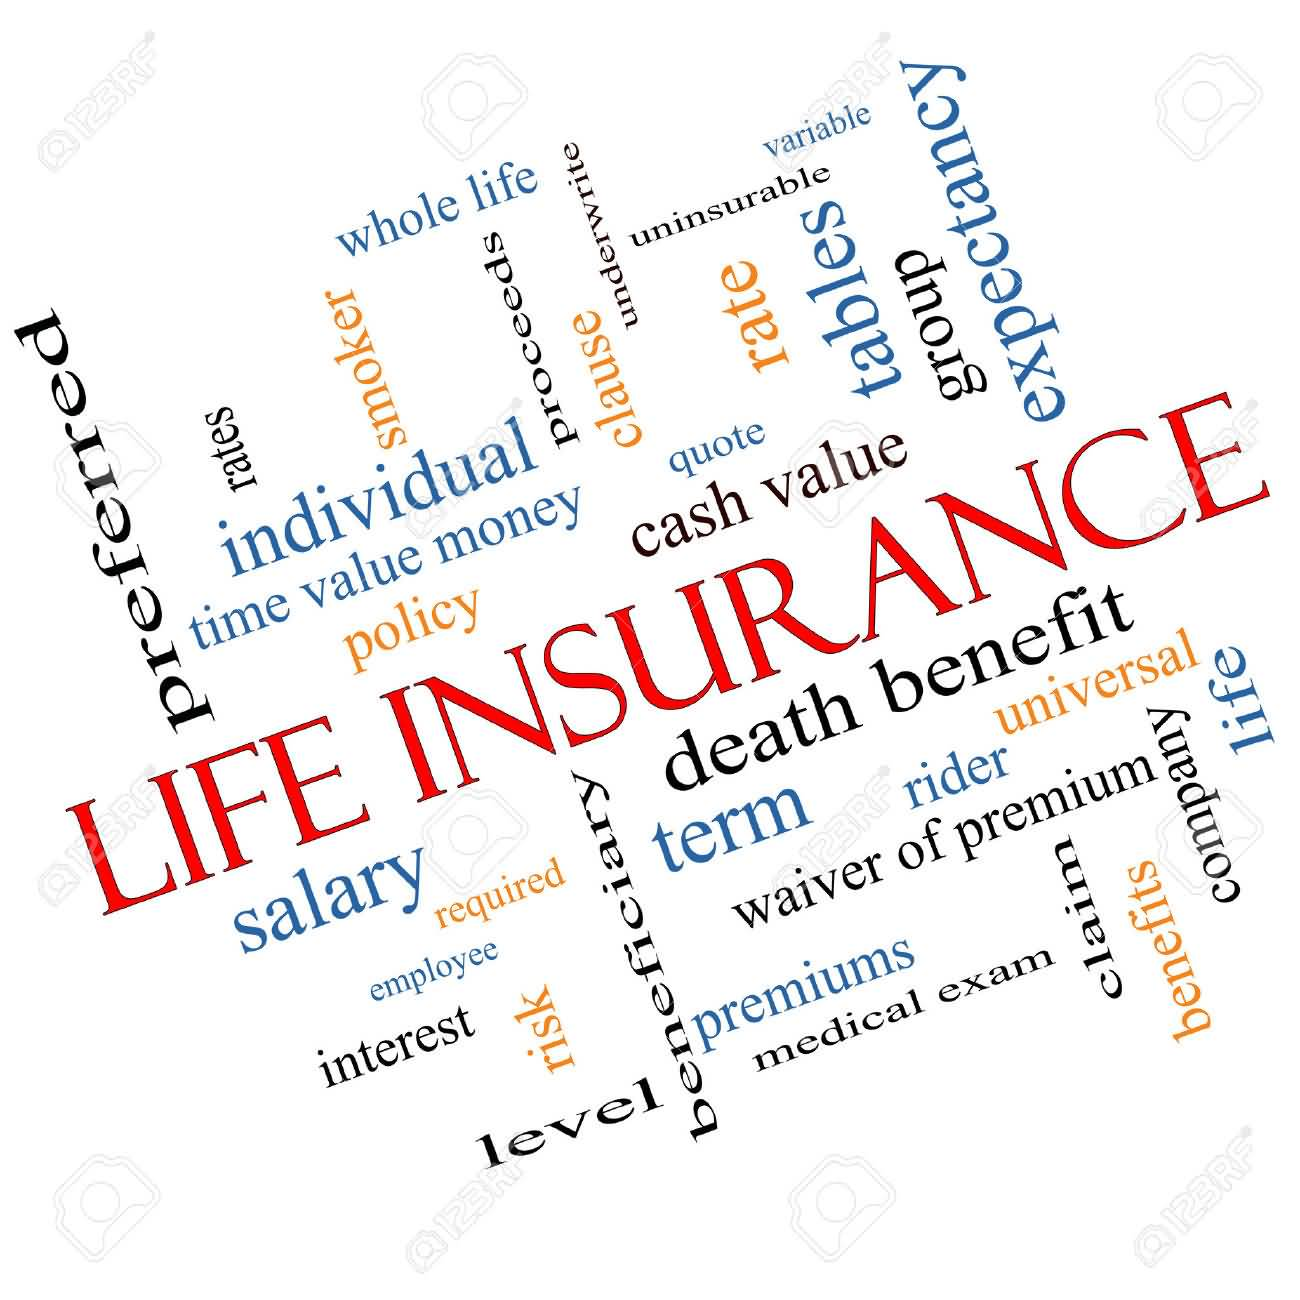 Life Insurance Quotes Online Free: 20 Quote For Whole Life Insurance Pics And Photos